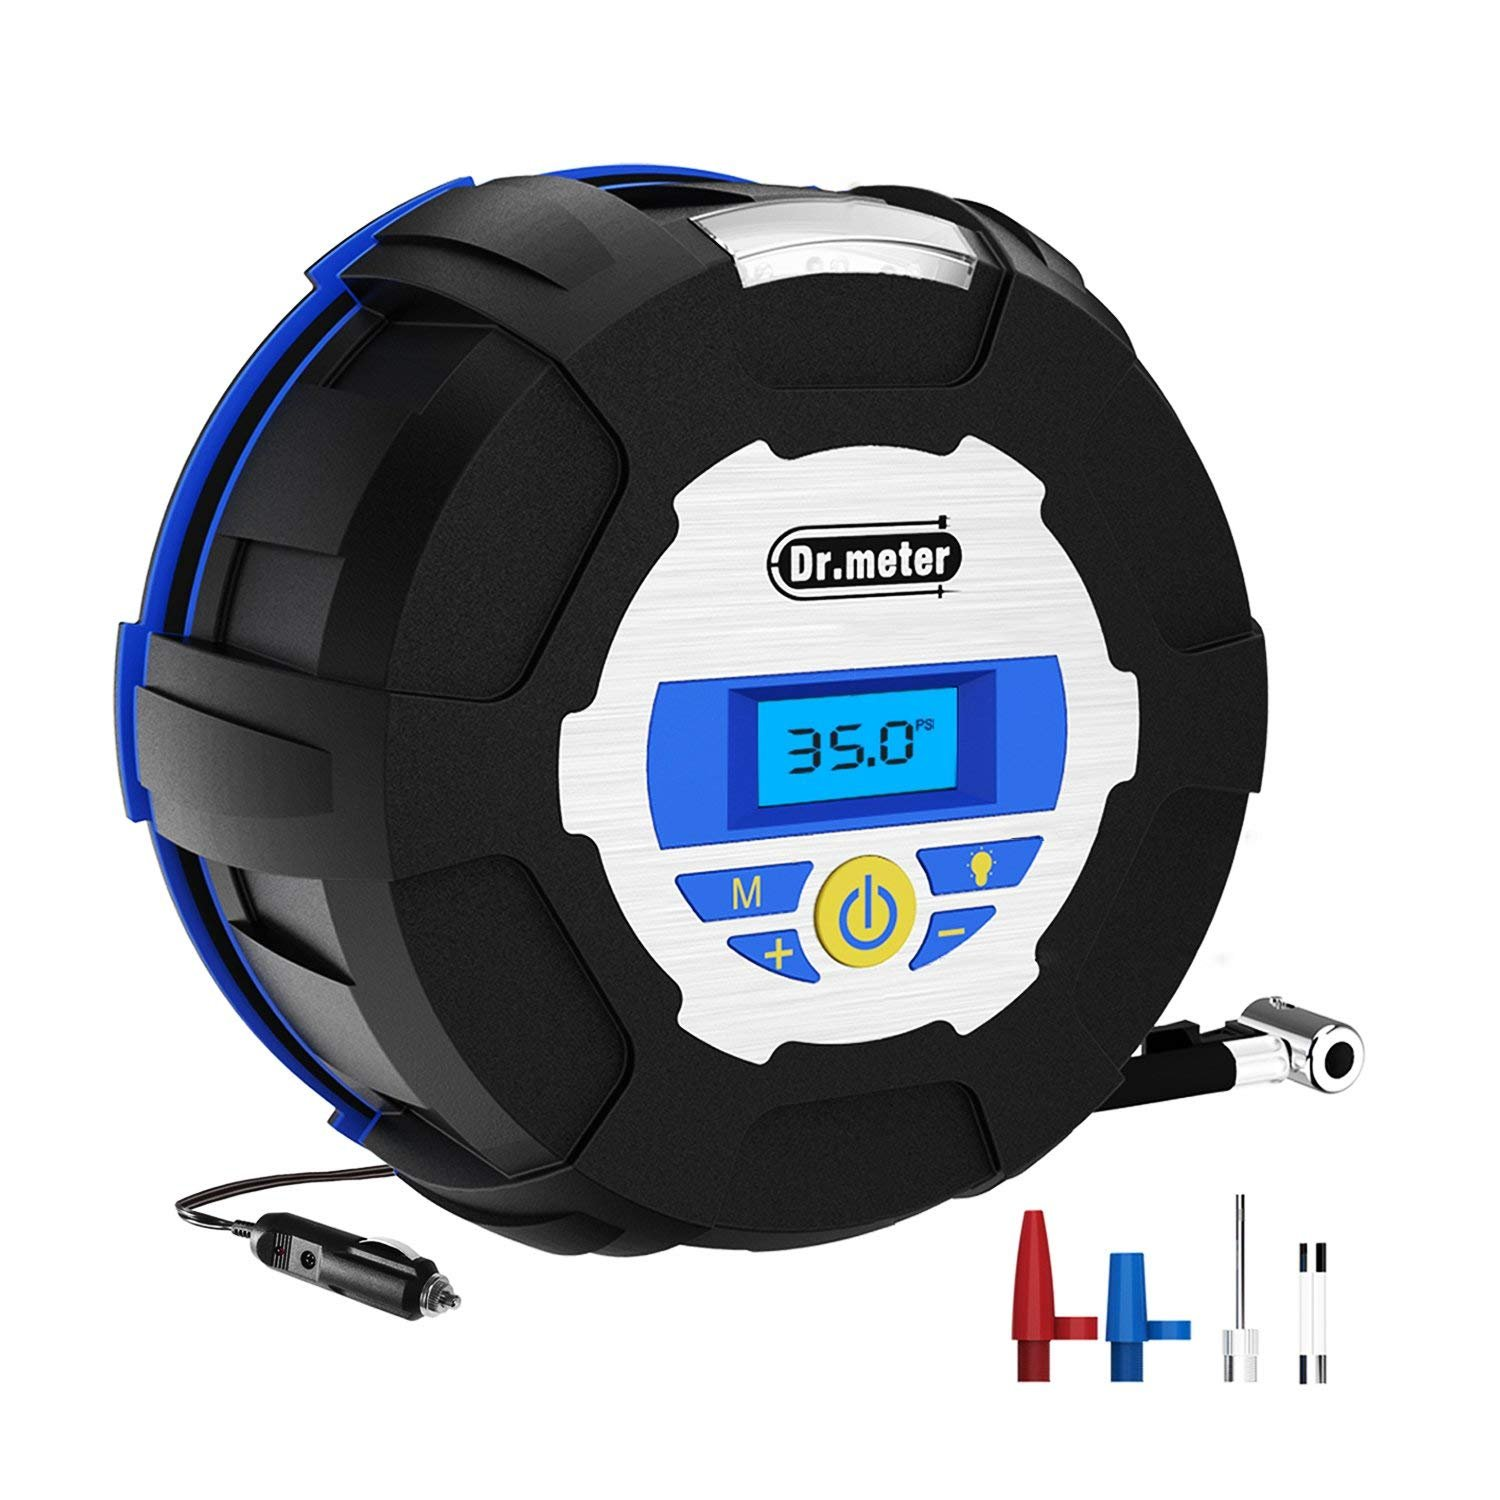 Dr.meter Auto Digital Tire Inflator, Portable Air Compressor Pump, 12V 150 PSI Tire Pump for Car, Truck, Bicycle, and Other Inflatables